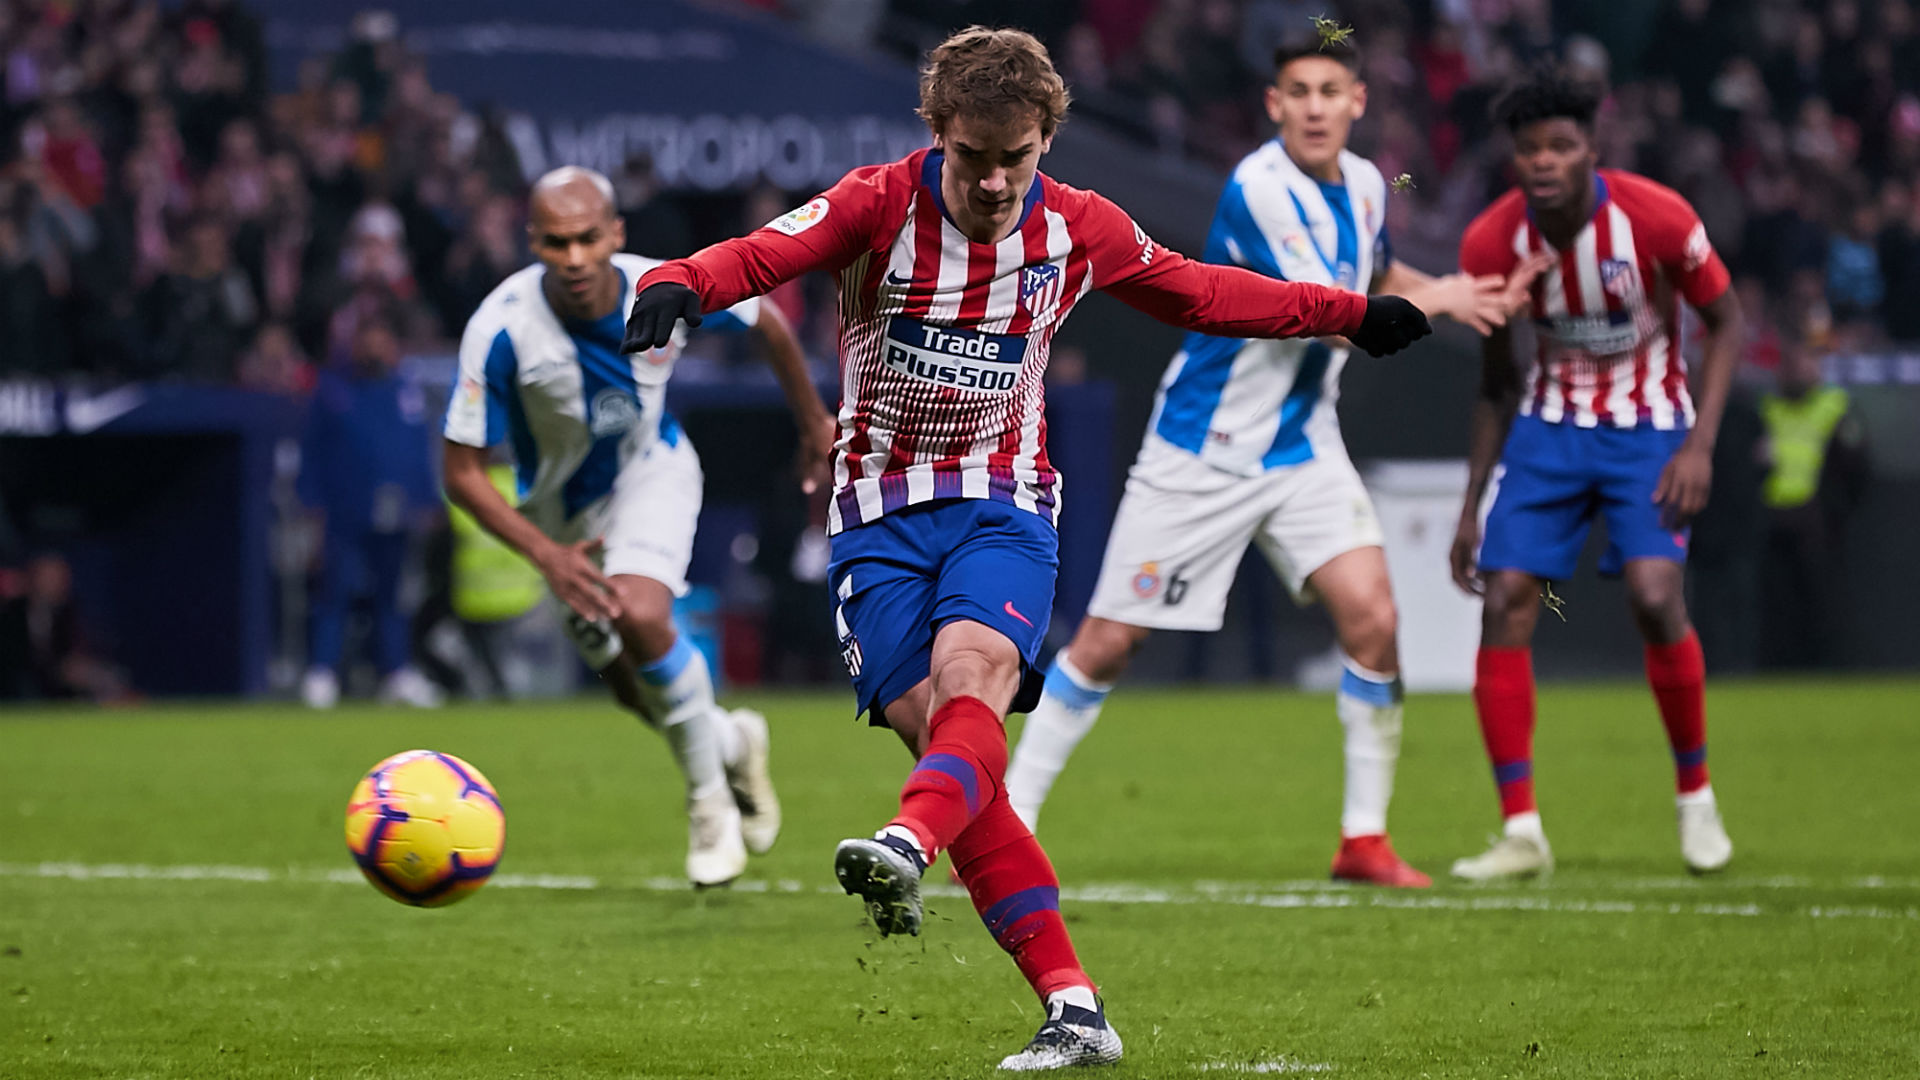 Atletico Madrid 1 Espanyol 0: Griezmann's 200th career goal moves hosts back up to second